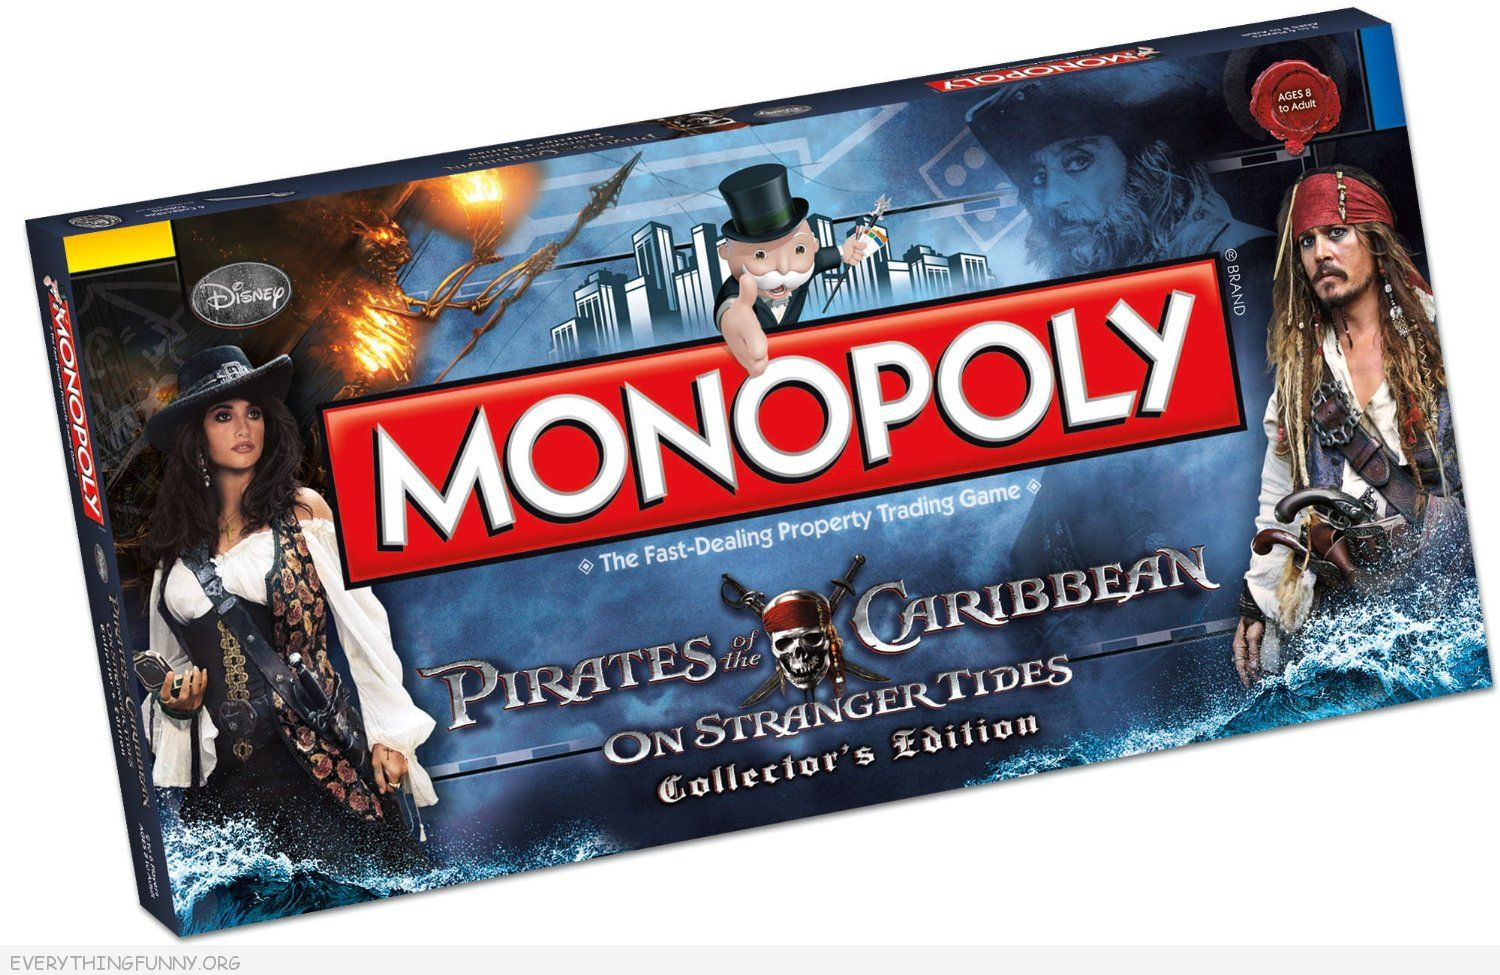 pirates of the caribbean monopoly game,